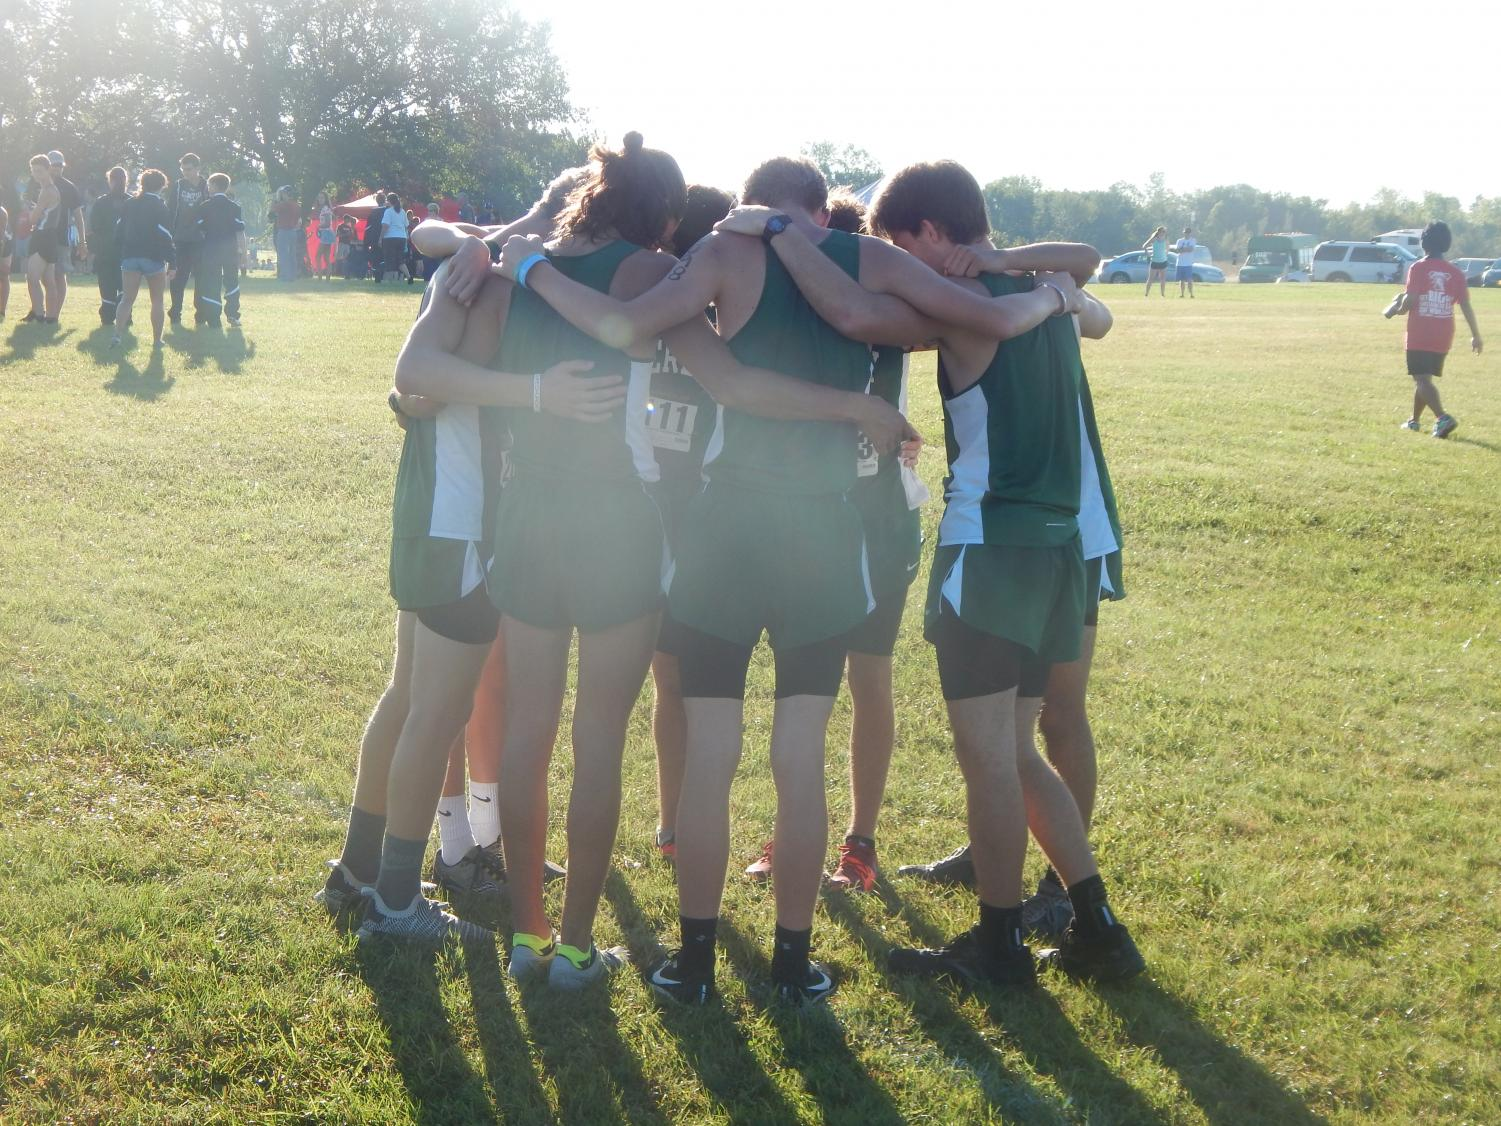 After the runners do their warm ups they do a team huddle in preparation for their upcoming race